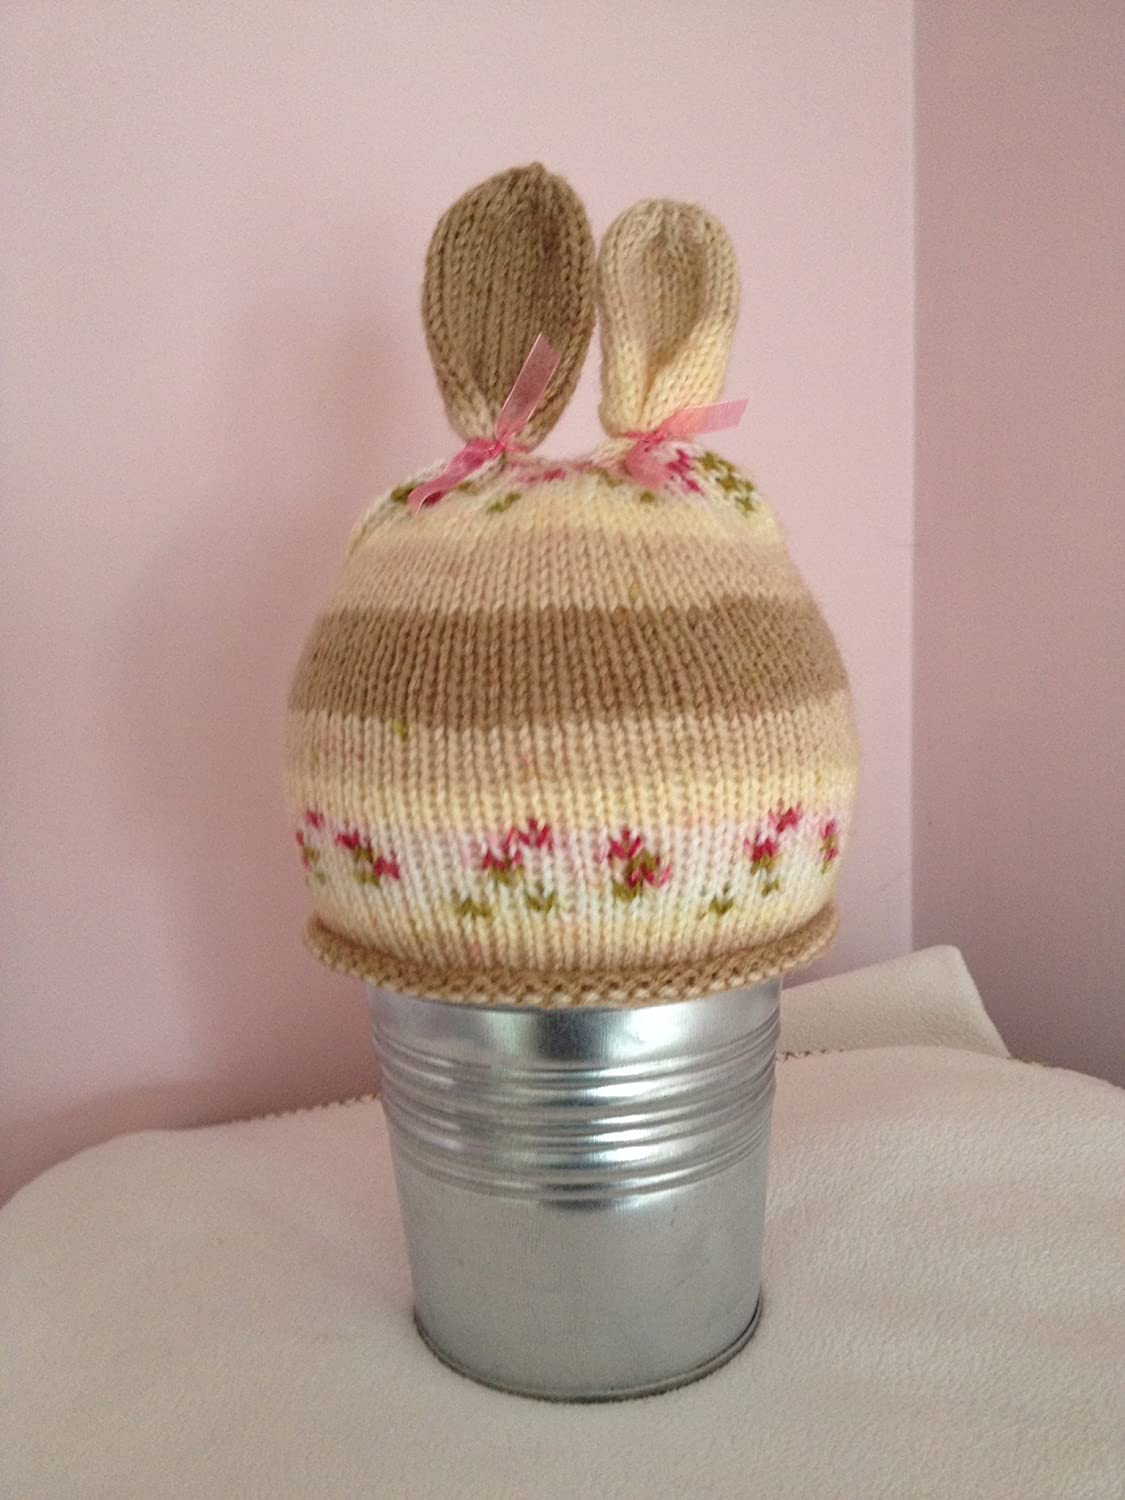 Bunny beanie hat with ears - hand-knitted in fairisle yarn